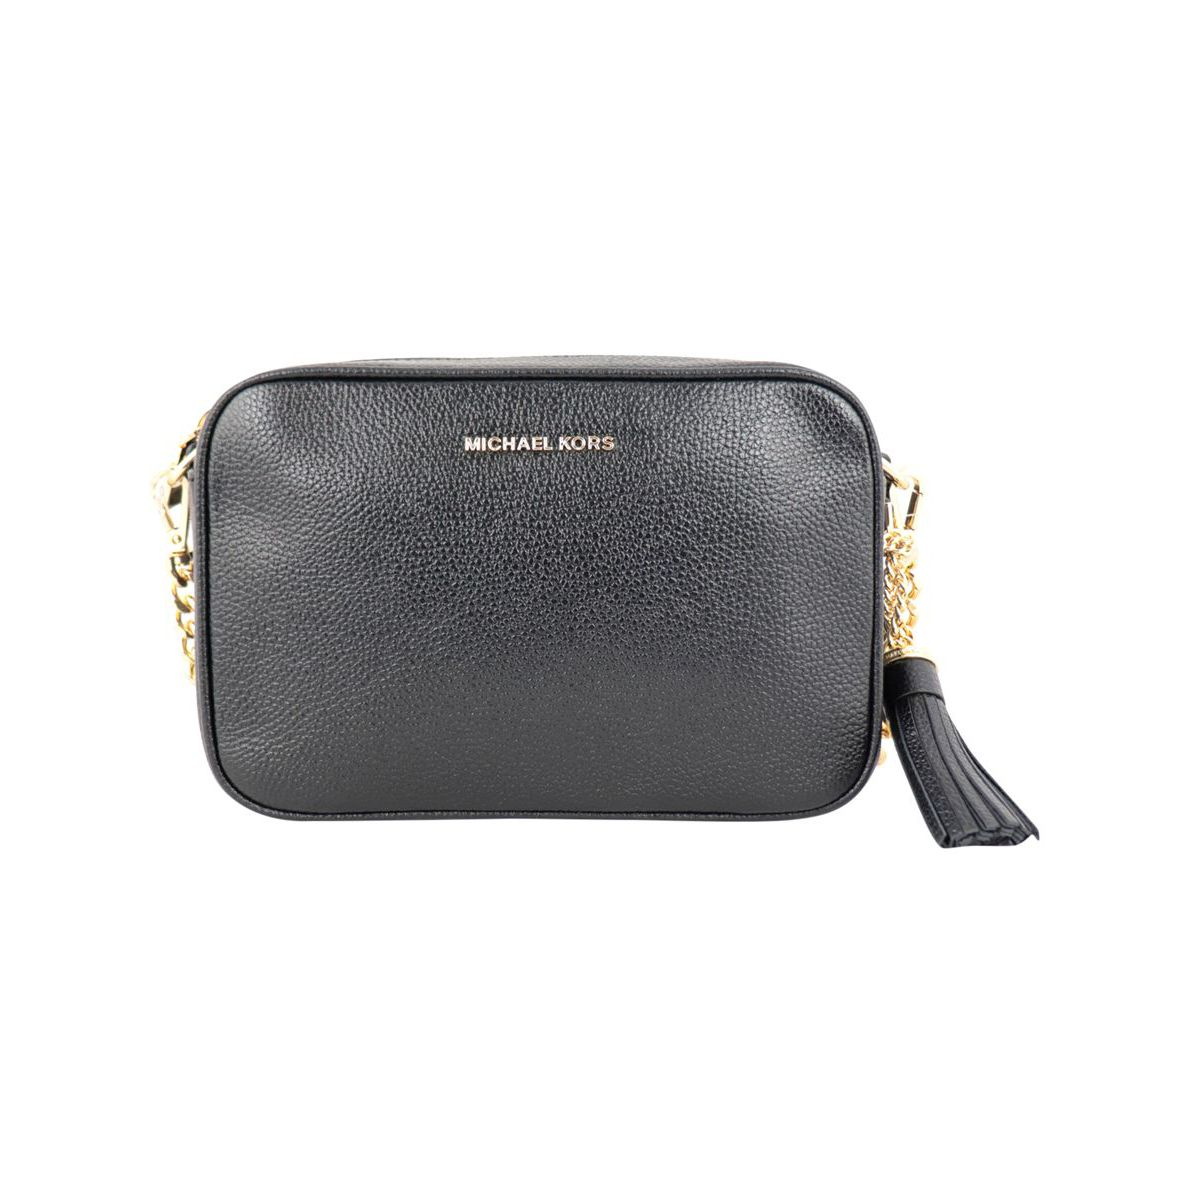 Camera bag in textured leather with charm Black Michael Kors